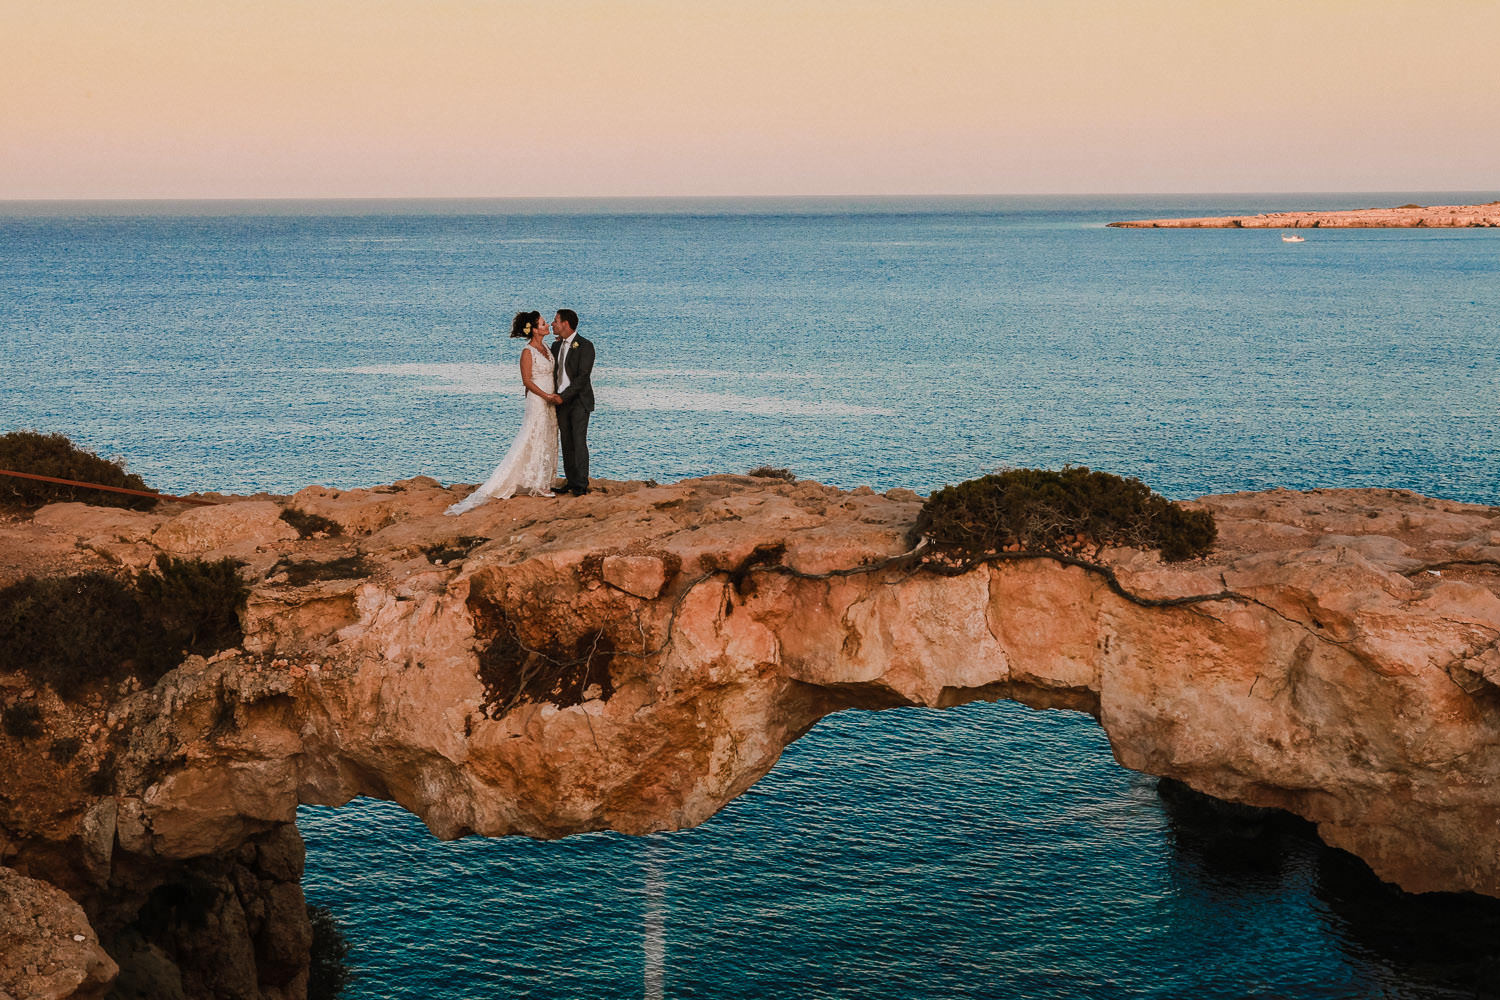 Bride and groom Cyprus love bridge